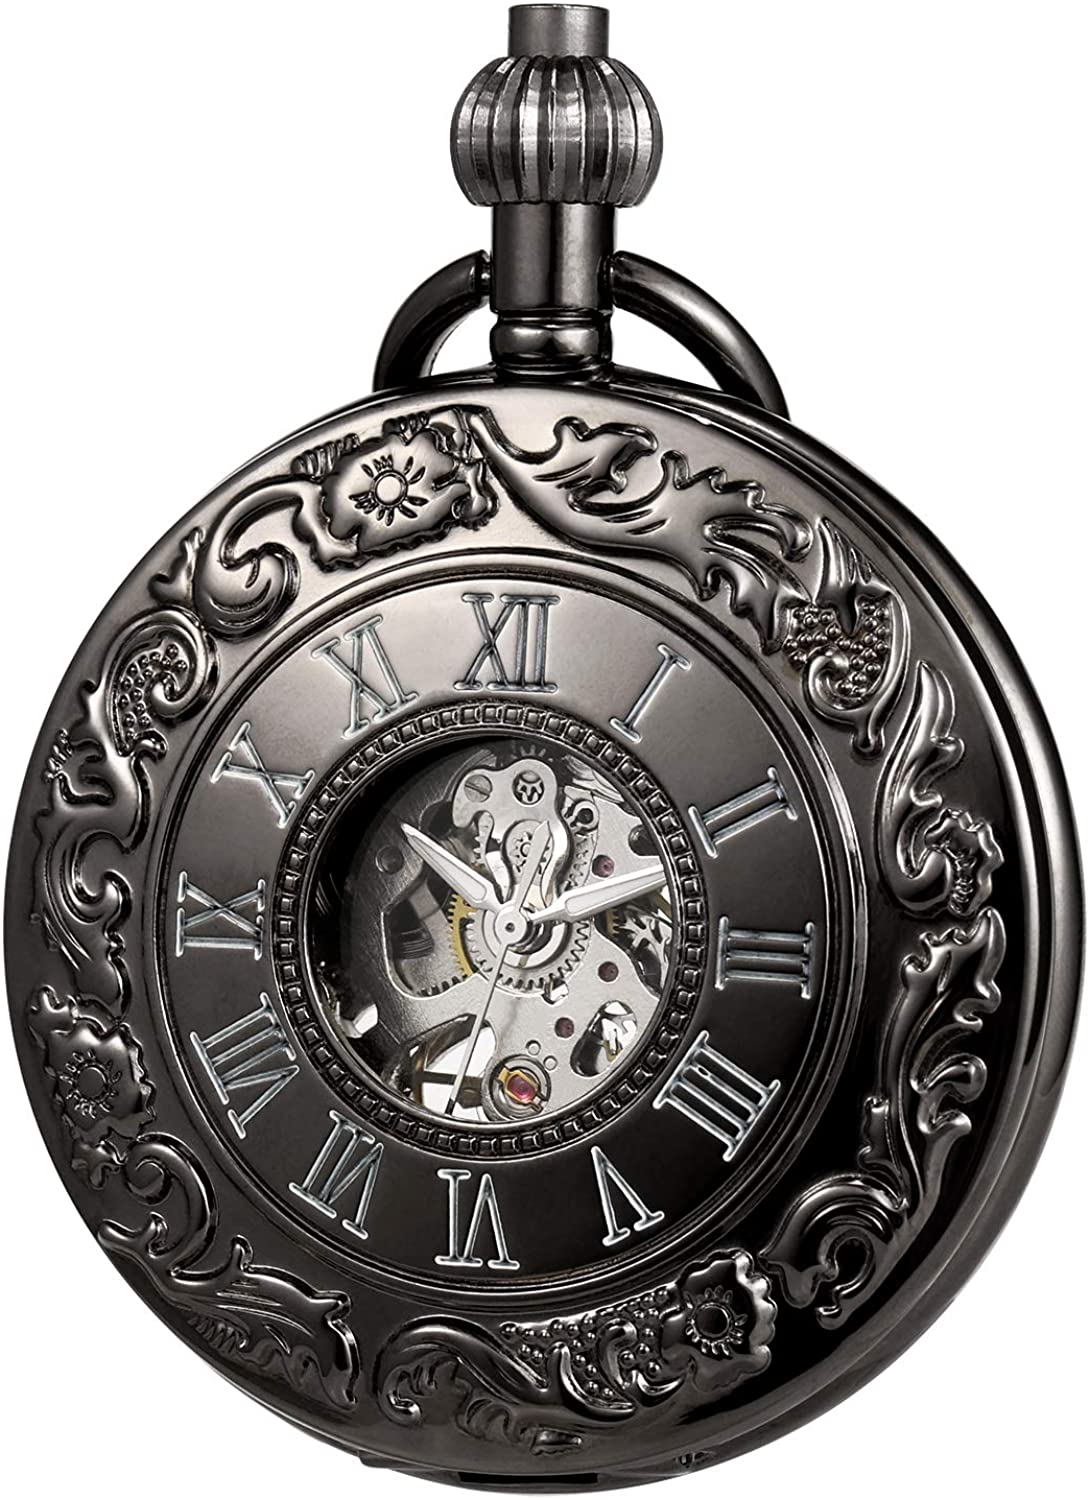 MORFONG Pocket Watch Retro Silver Classic Mechanical Steampunk Roman Numerals Fob Watch for Men Women with Chain + Gift Box